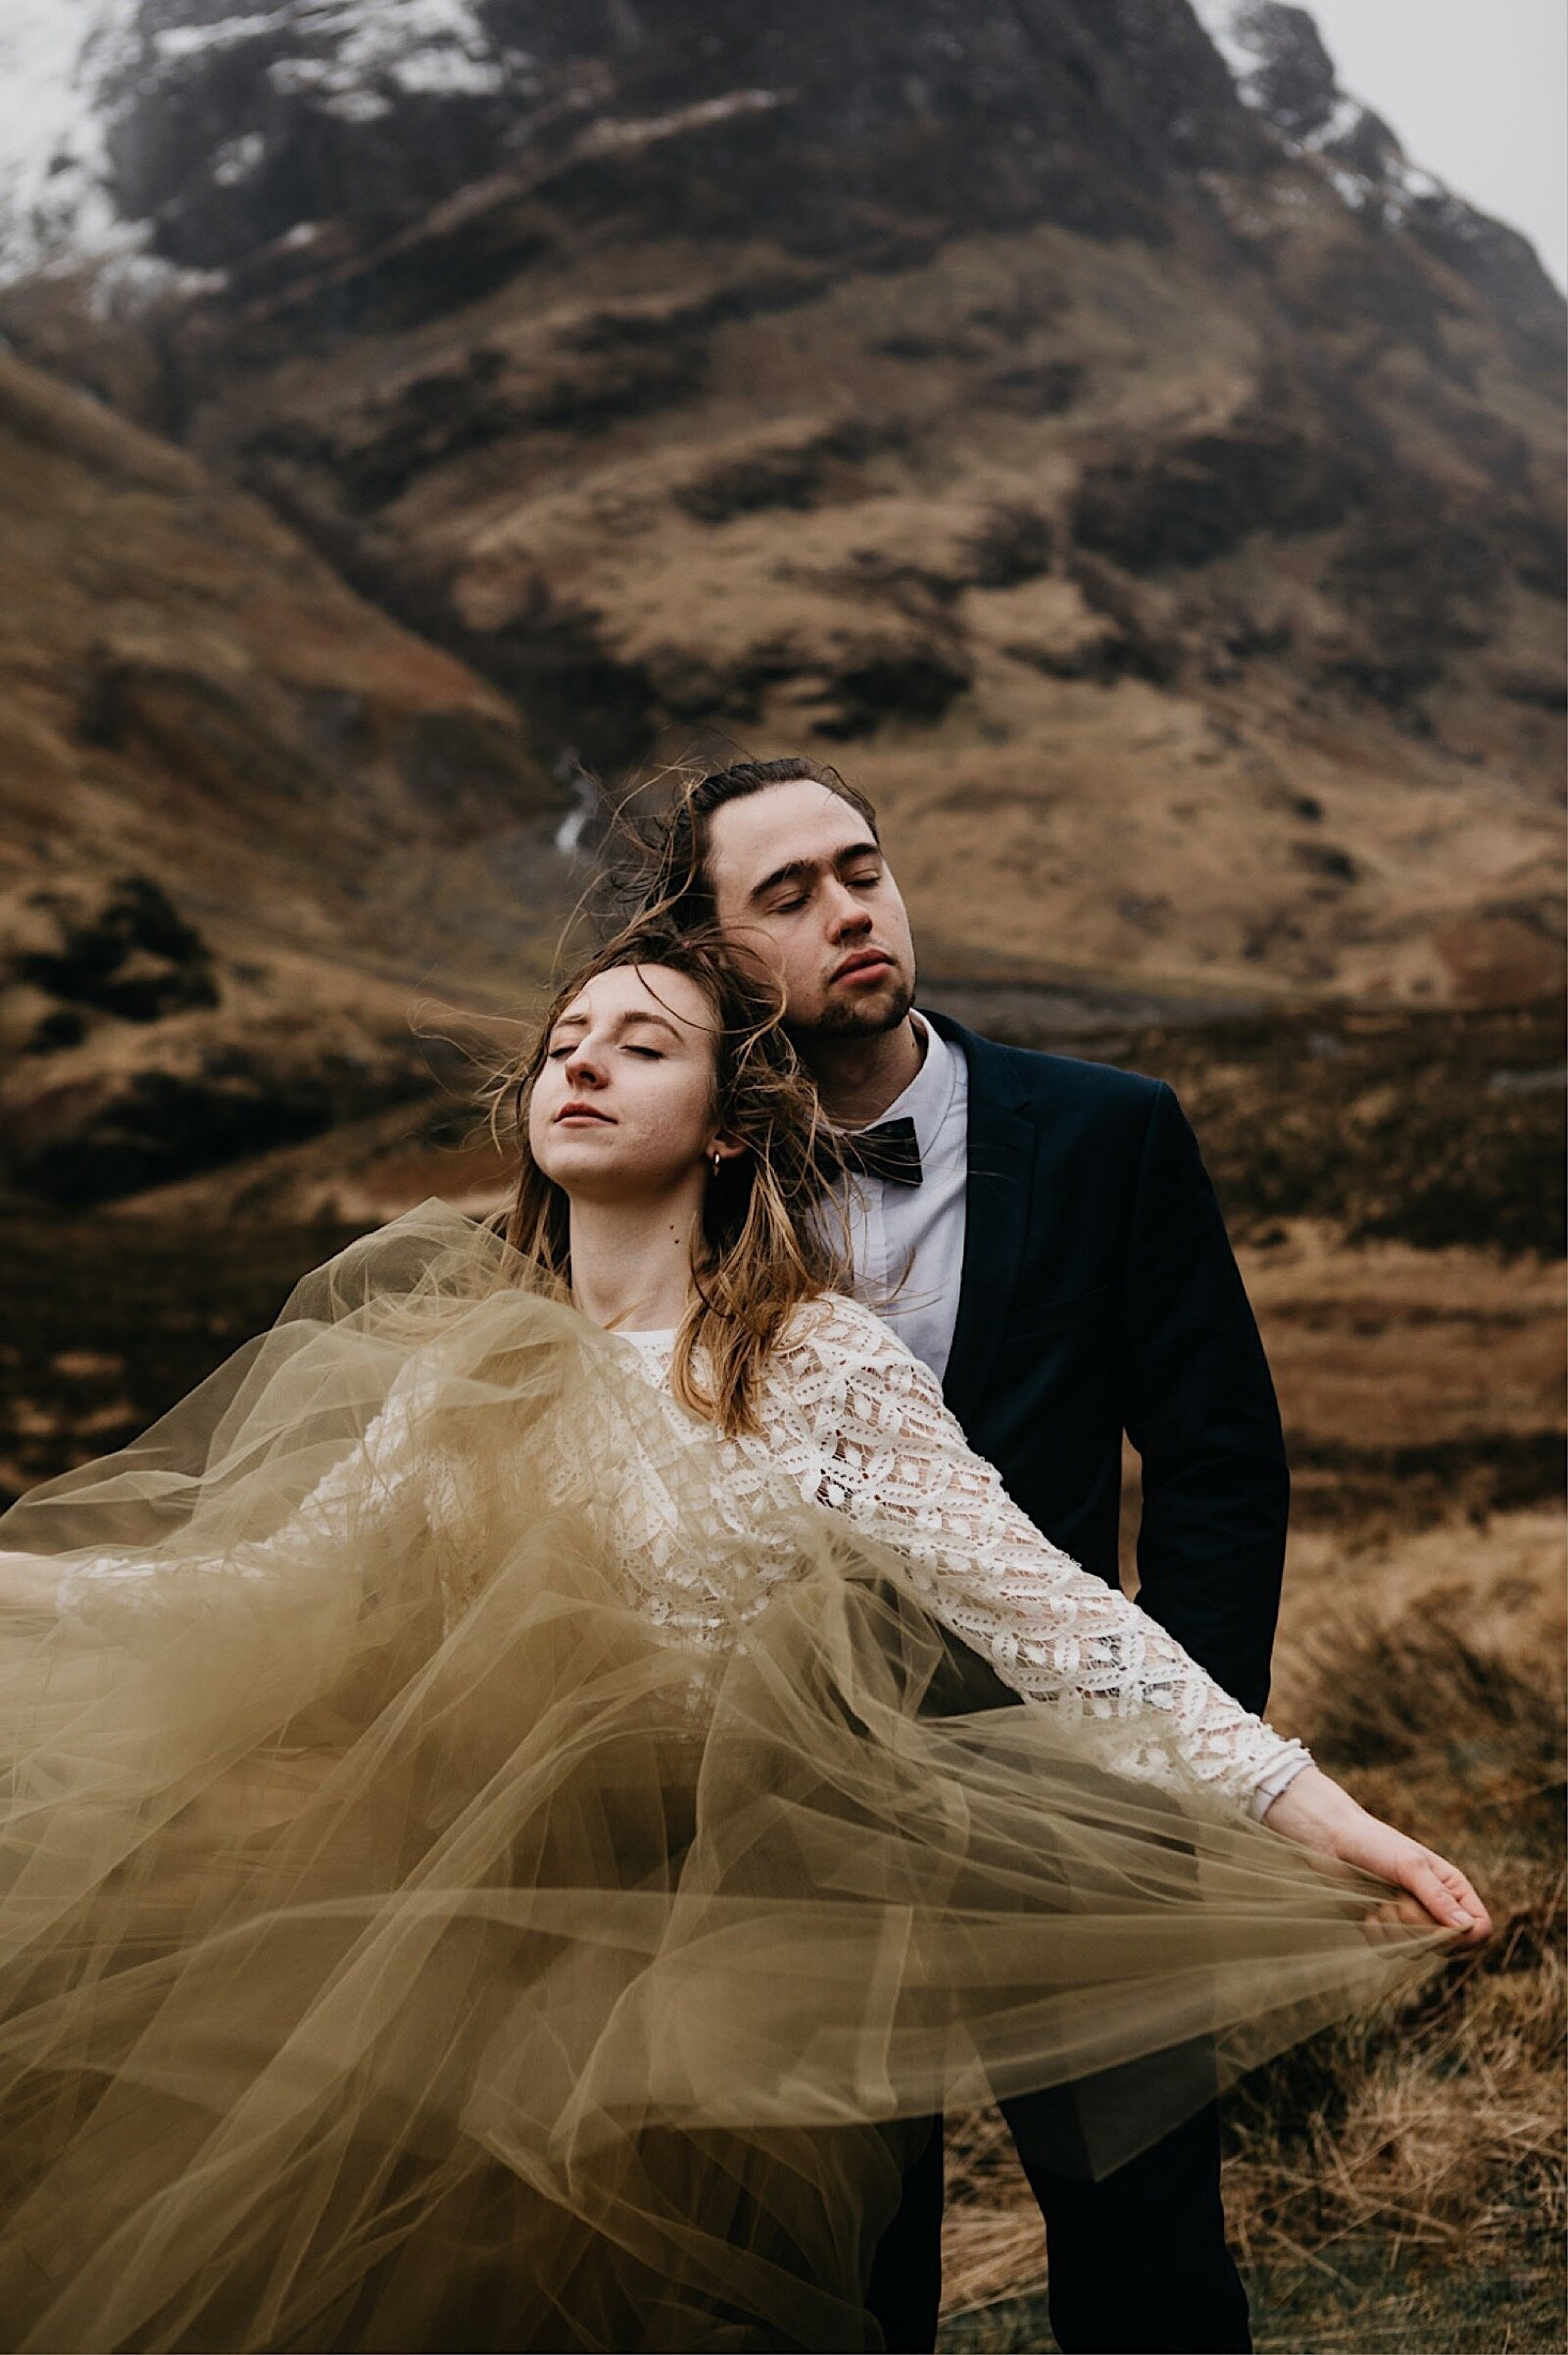 01_scotland_couple_shoot_lety_photography (41 von 42).jpg